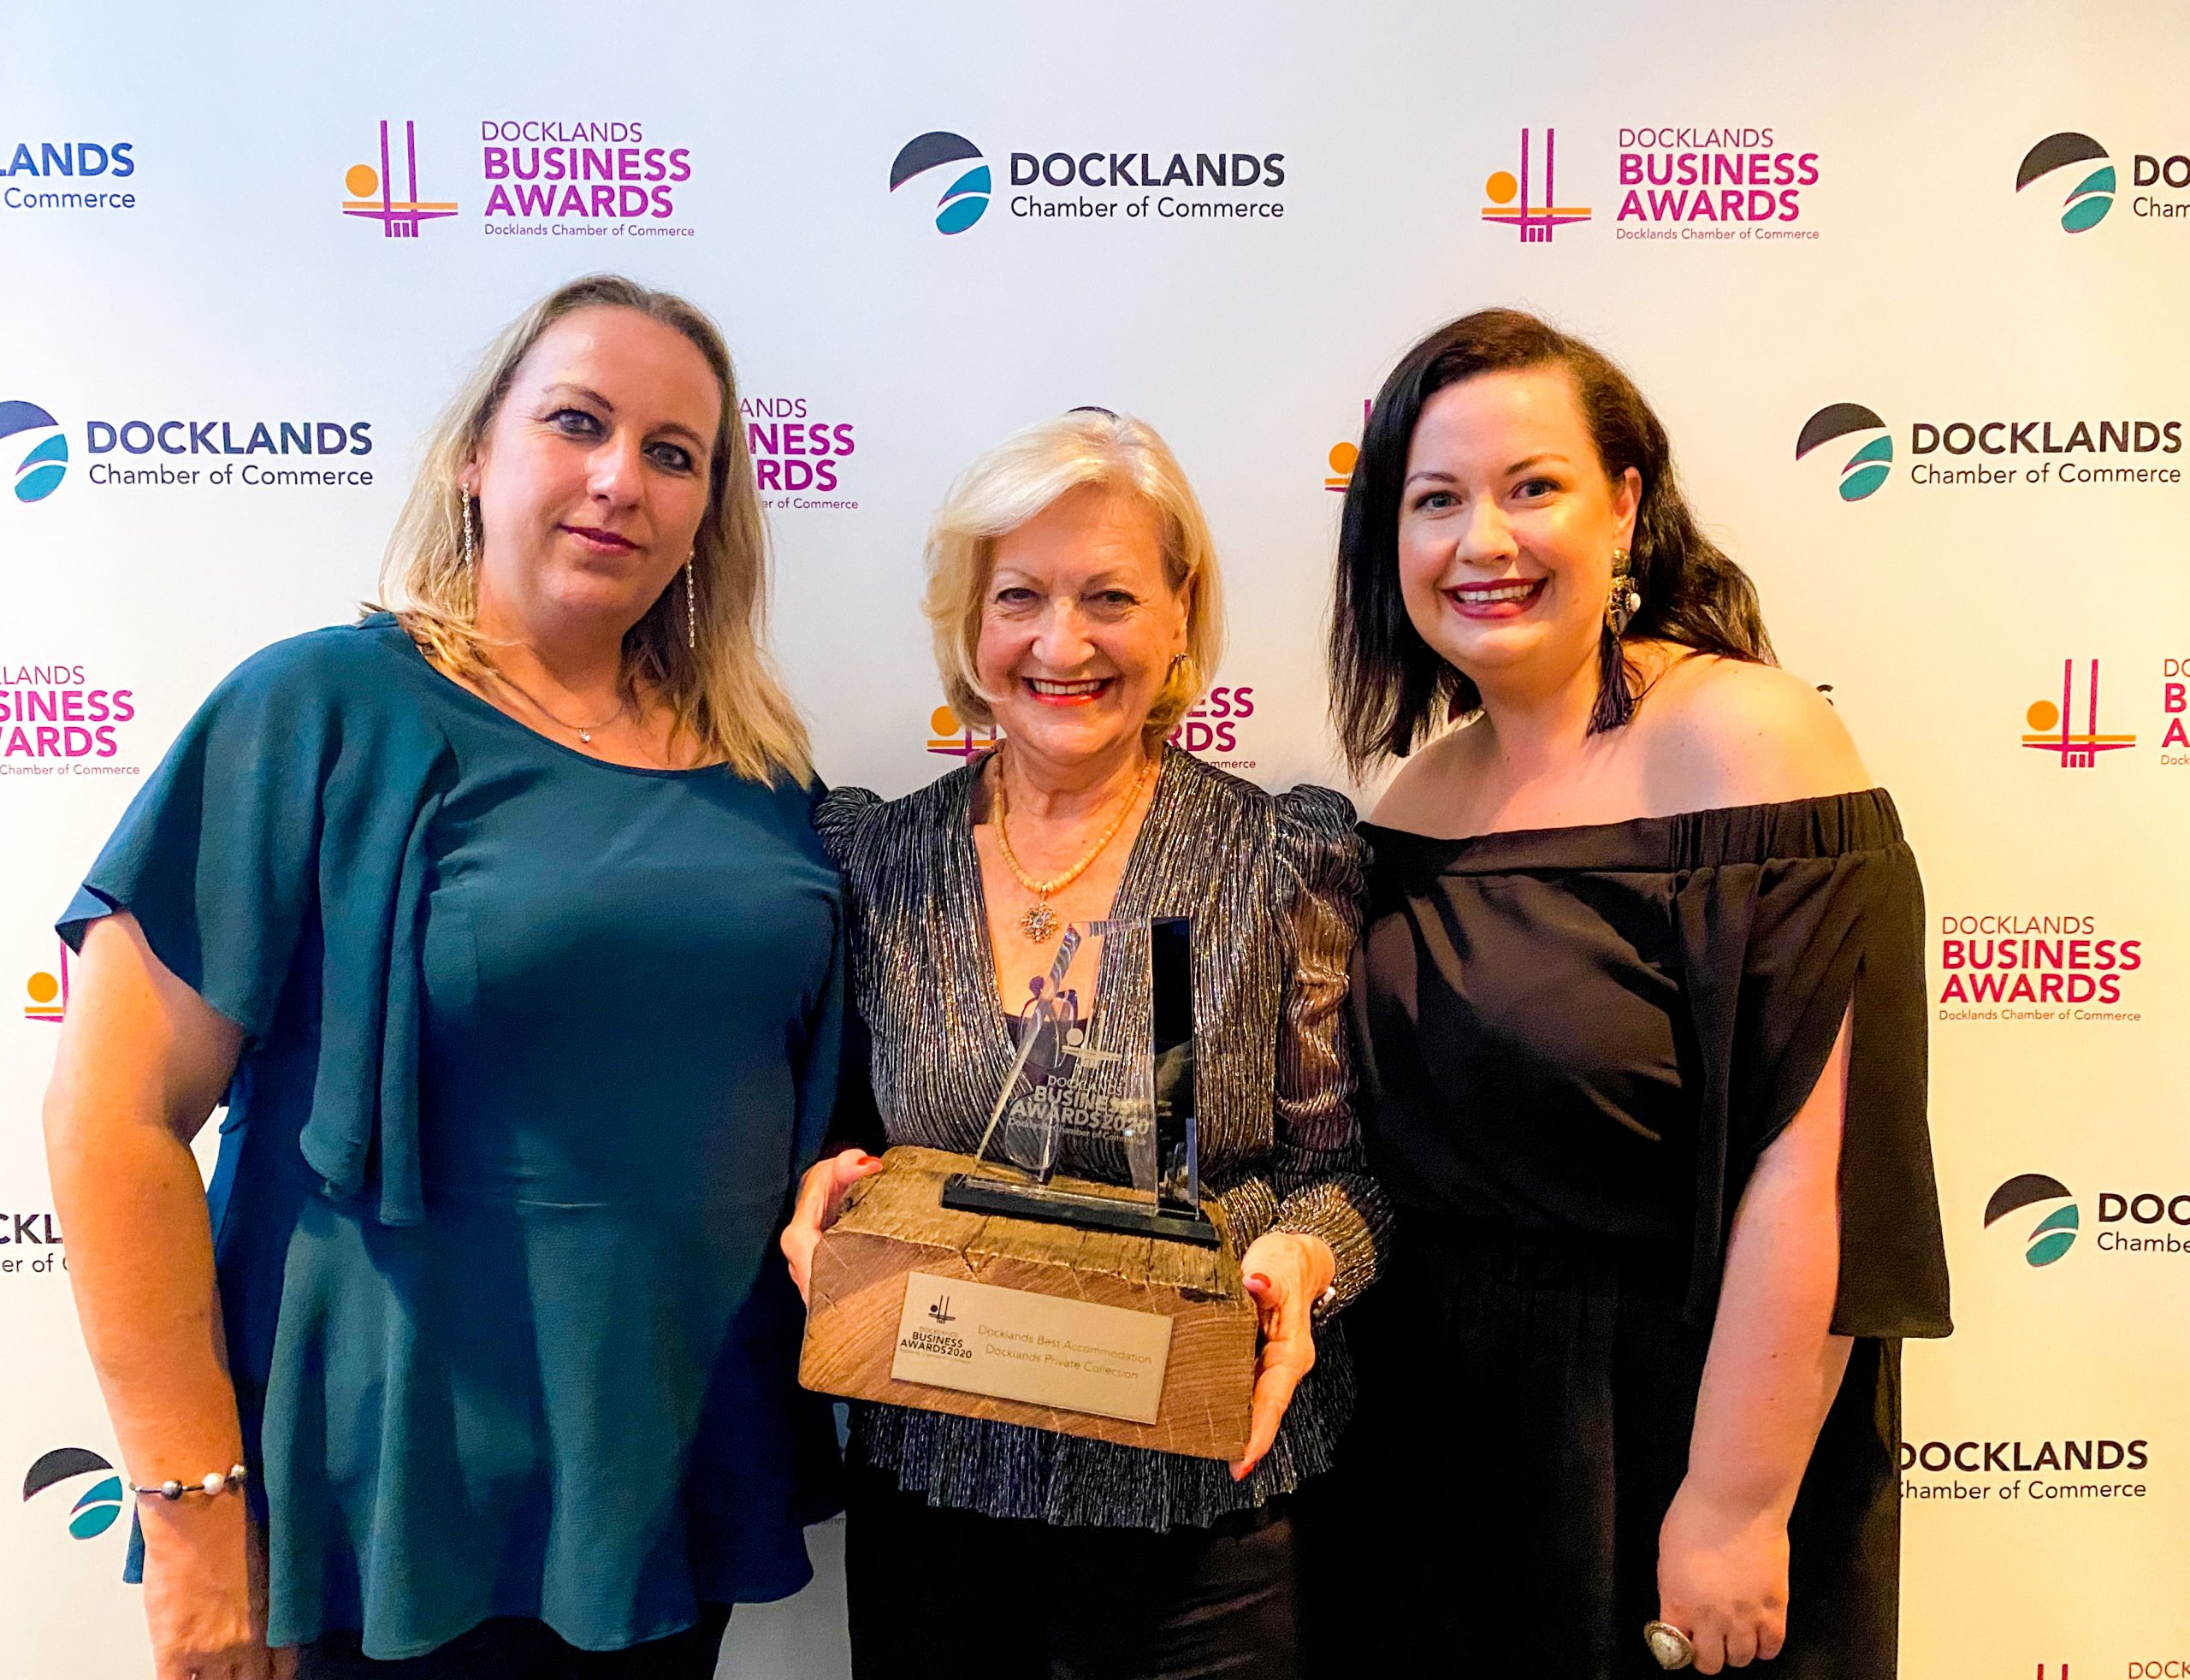 Docklands Business Awards Winners Announced